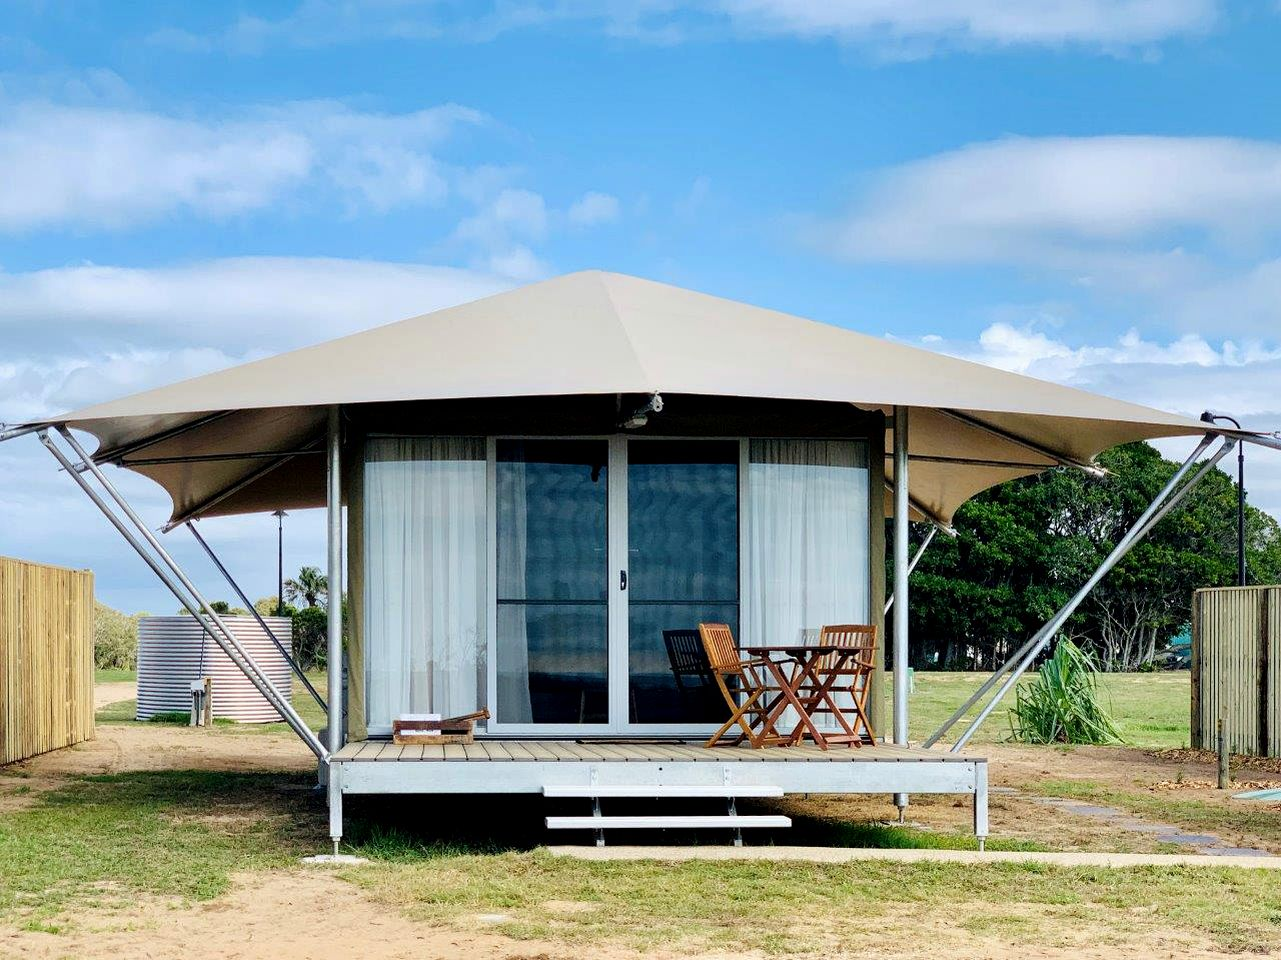 This Rules Beach accommodation is ideal for glamping in Queensland